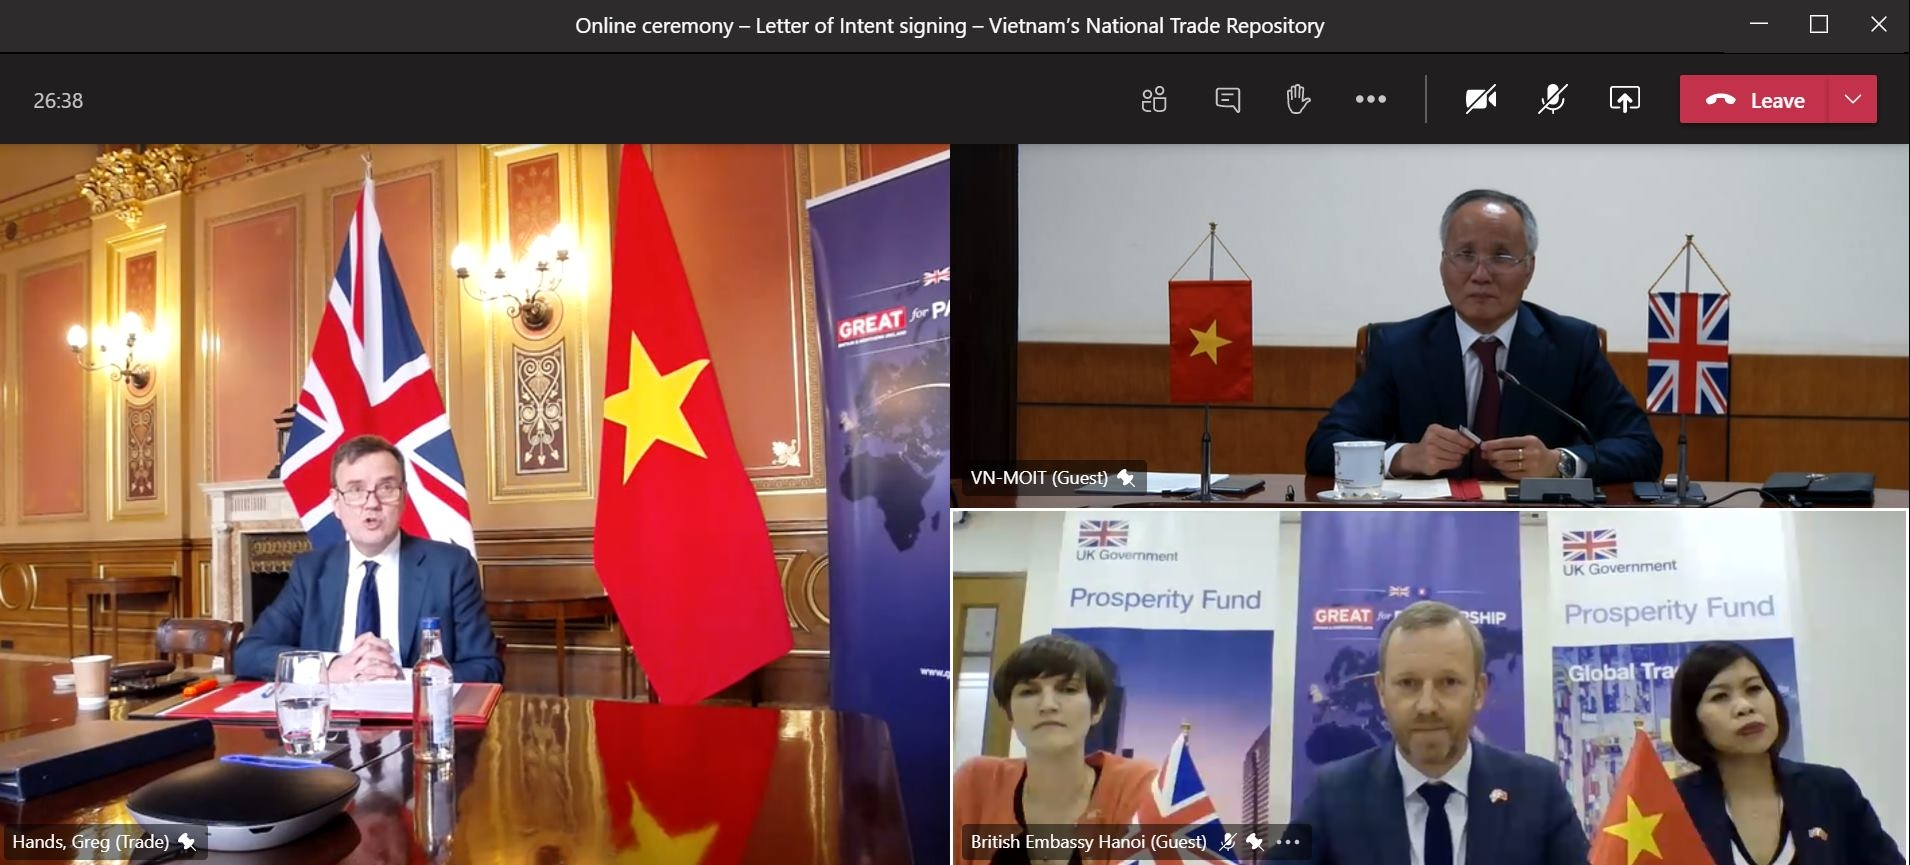 UK supports vietnam developing national trade repository